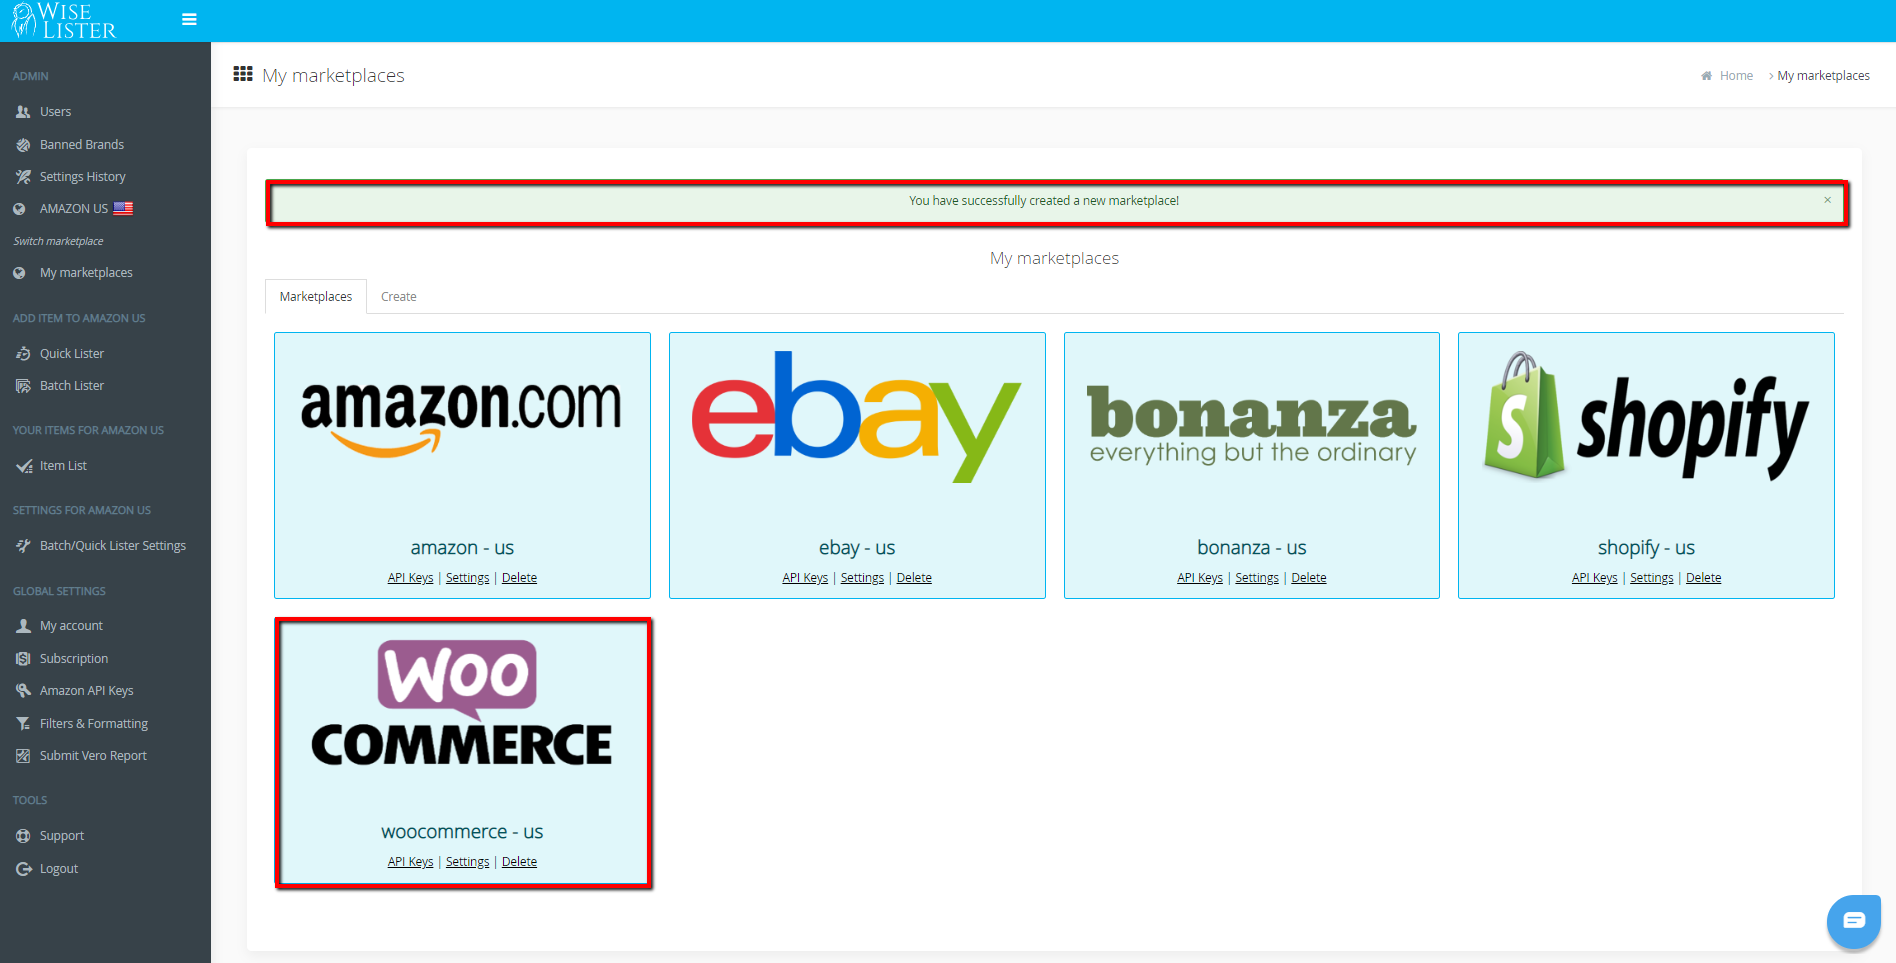 How to Set Up Your WooCommerce Marketplace in Wise Lister